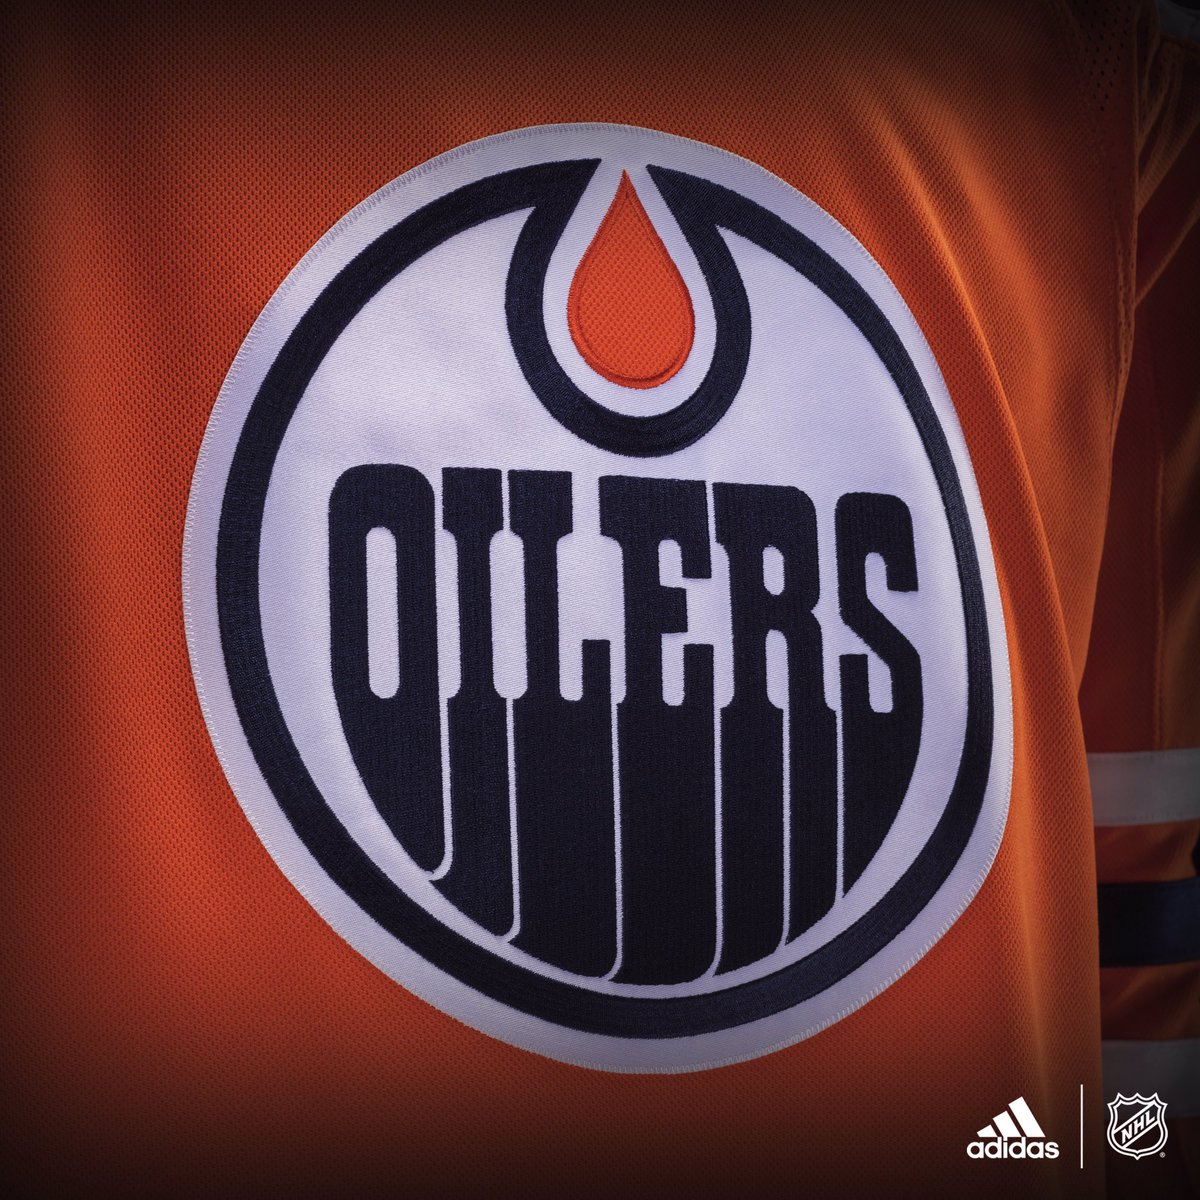 The Oilers will wear orange at home every game starting in the fall.